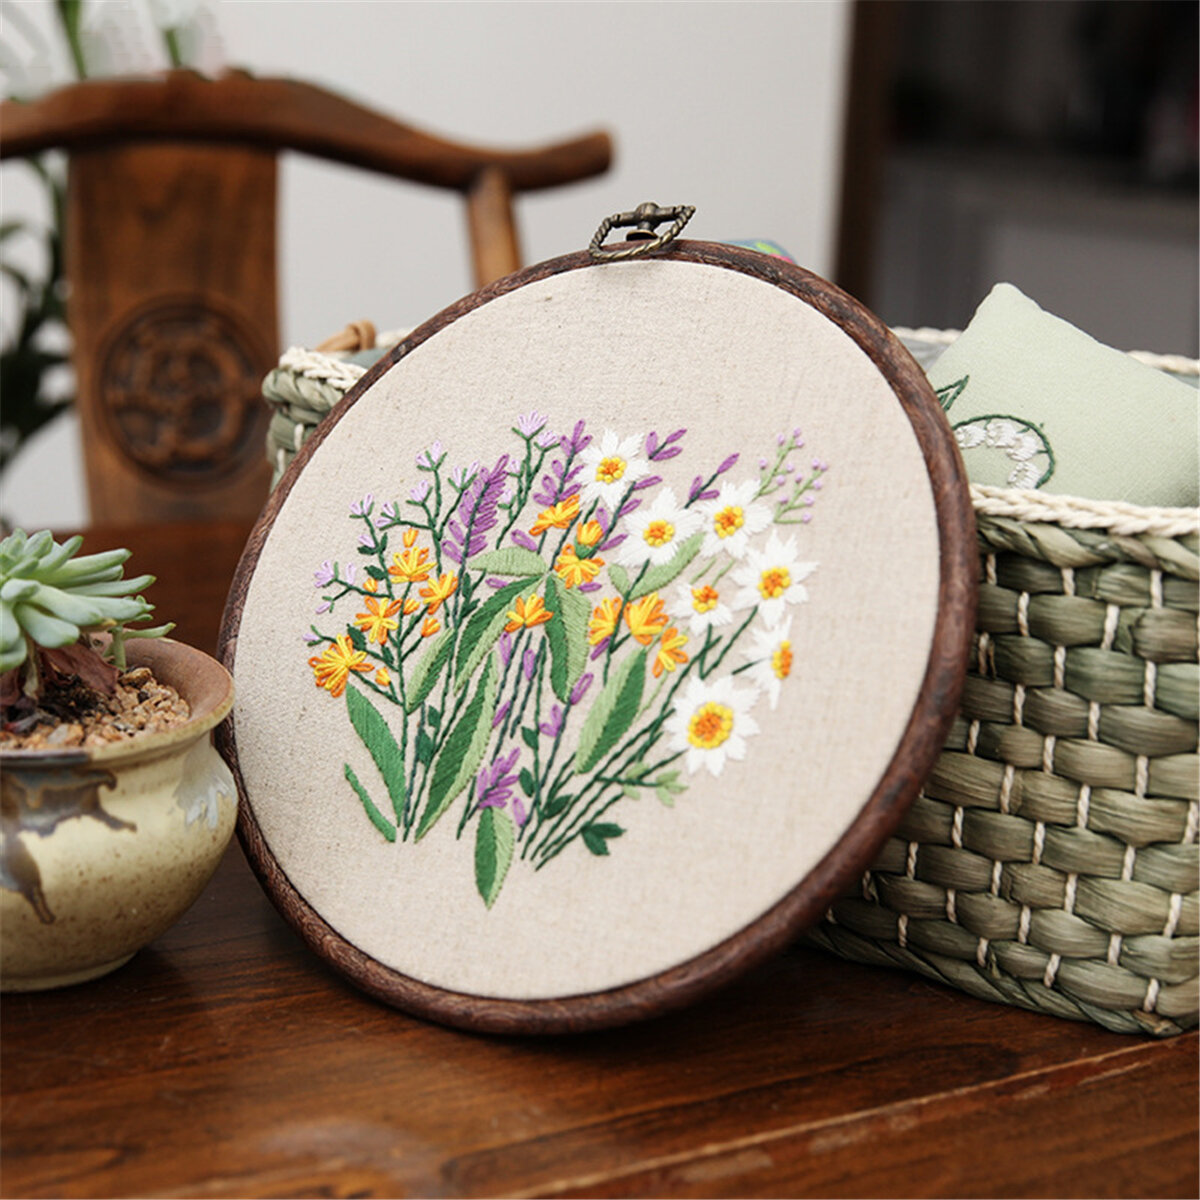 Embroidery Starter Kit With Pattern Stamped Embroidery Kit Including Embroidery Cloth With Pattern Bamboo Embroidery Hoo